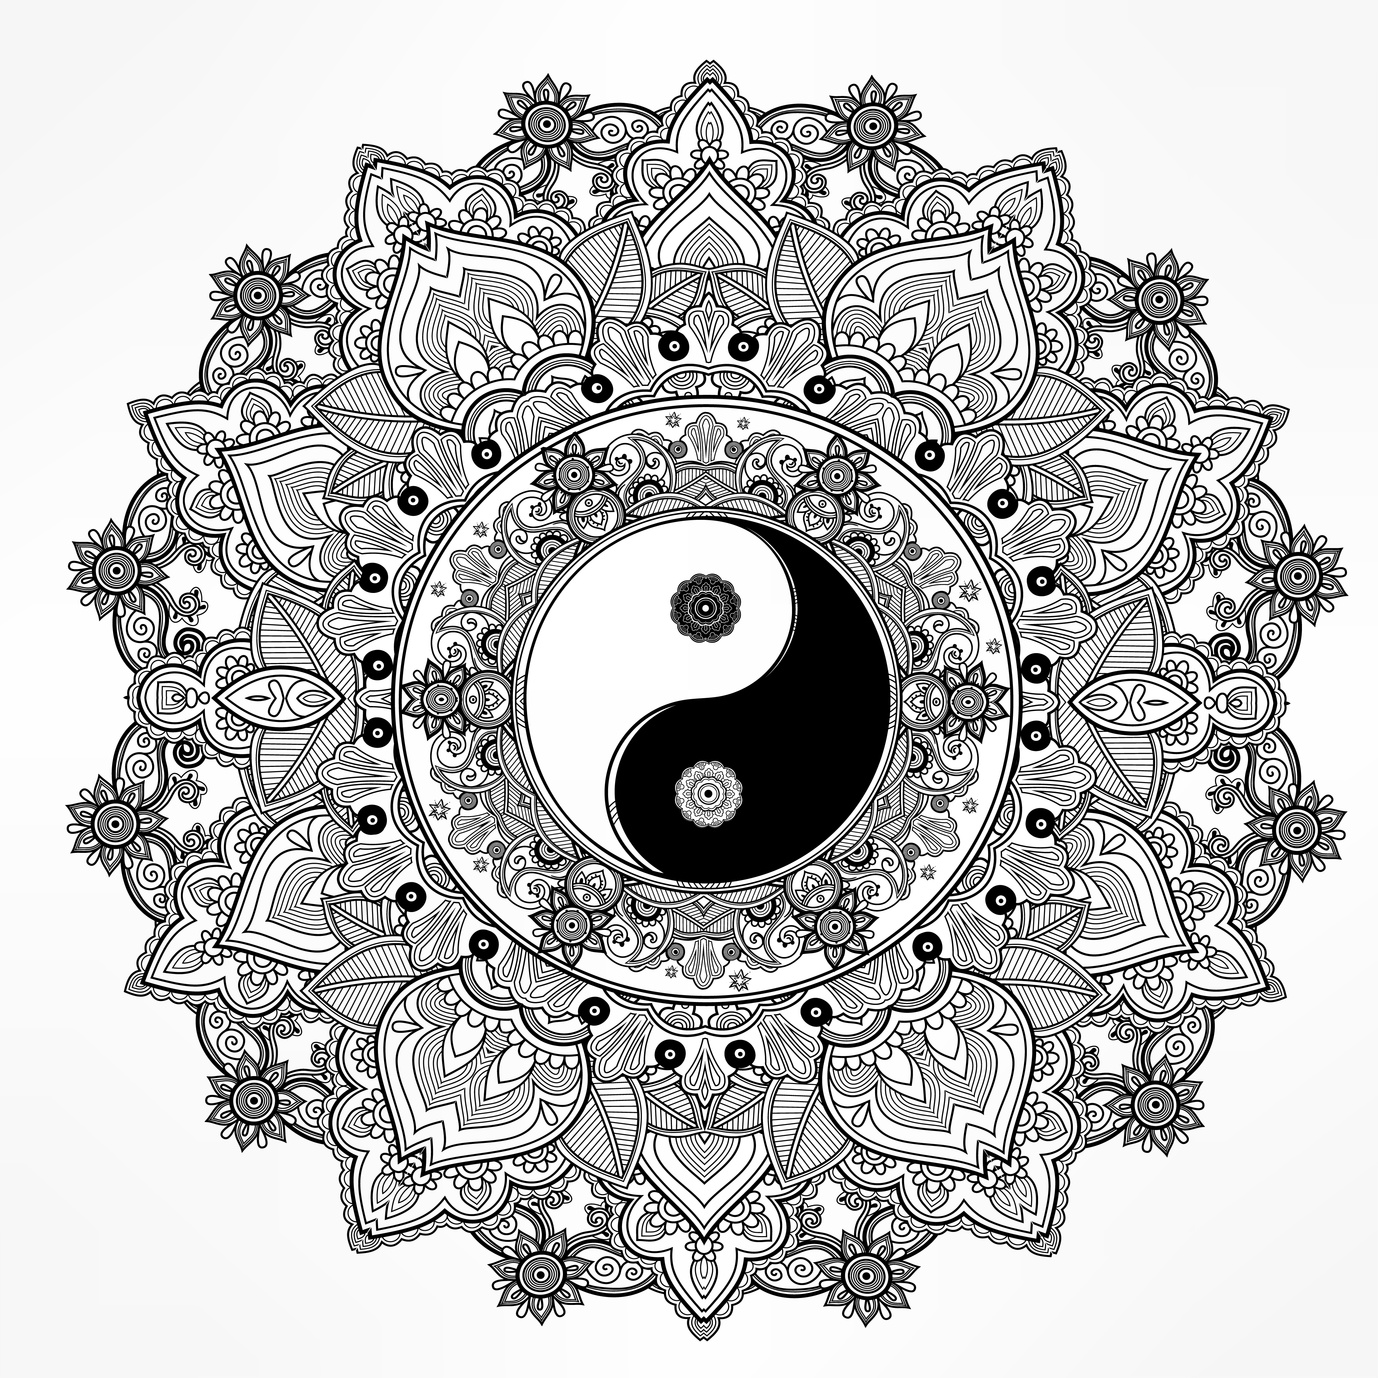 printable yin yang coloring pages cute yin yang coloring sheets coloring pages printable yin yang pages coloring